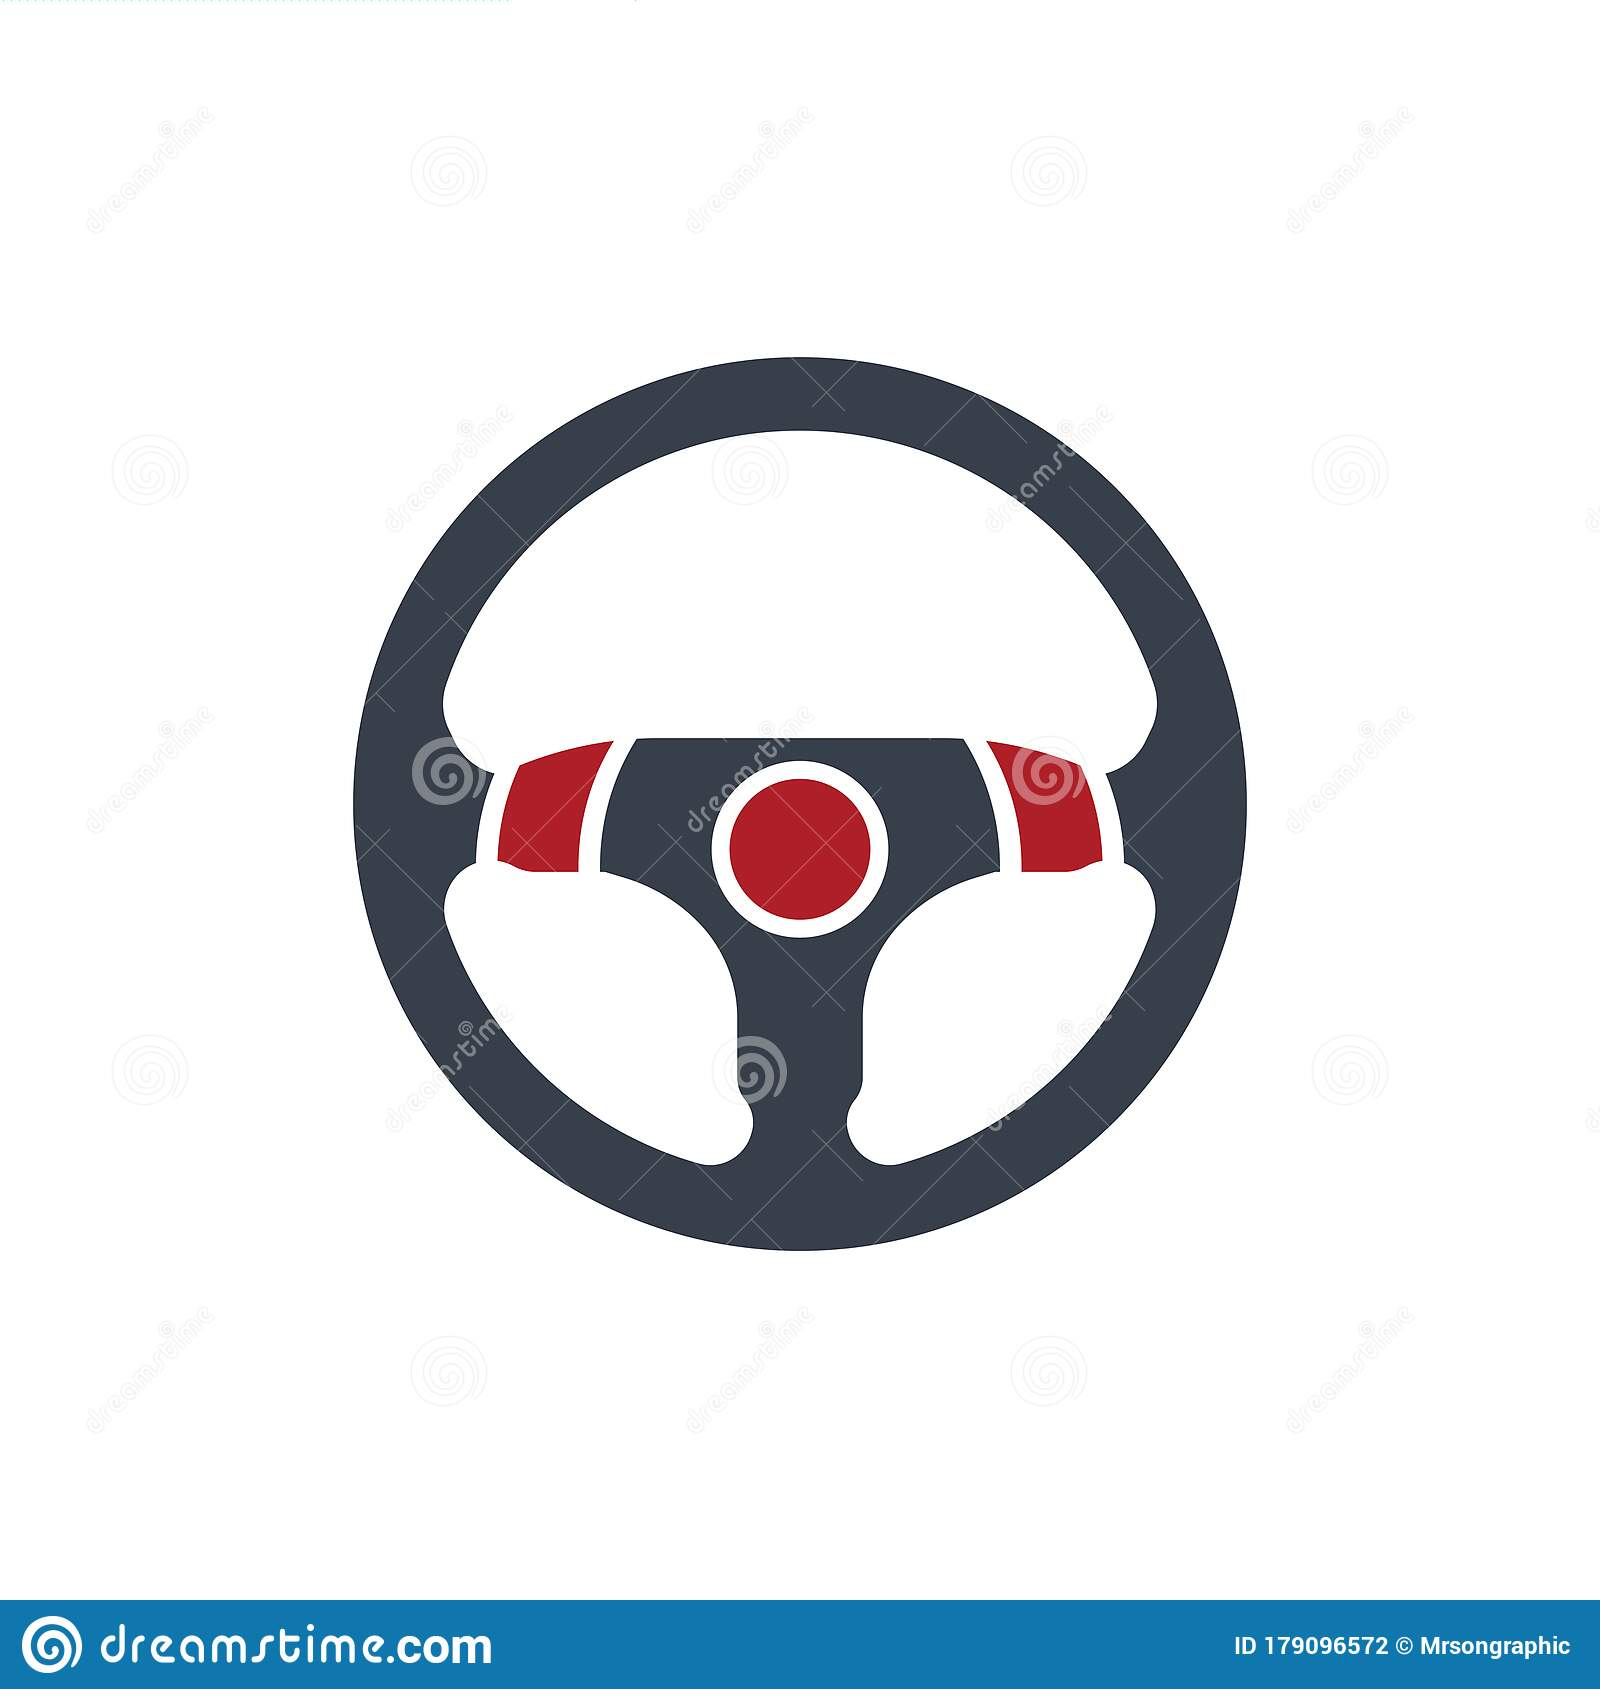 steering wheel vector logo stock vector illustration of graphic 179096572 steering wheel vector logo stock vector illustration of graphic 179096572